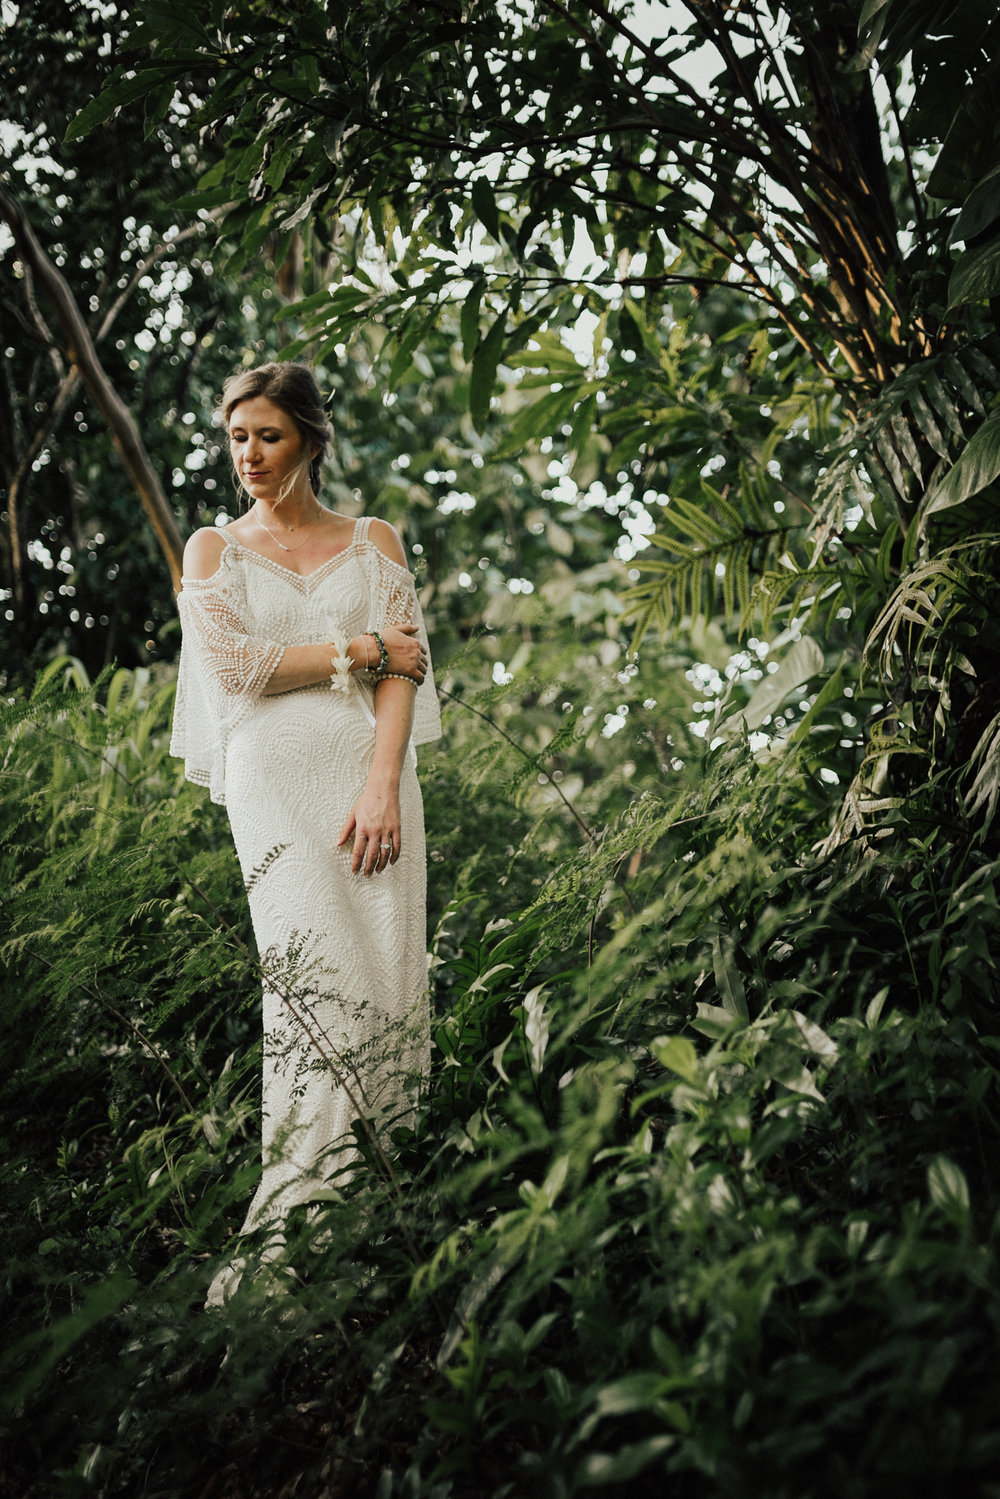 Kauai-elopement-photographer-60.jpg